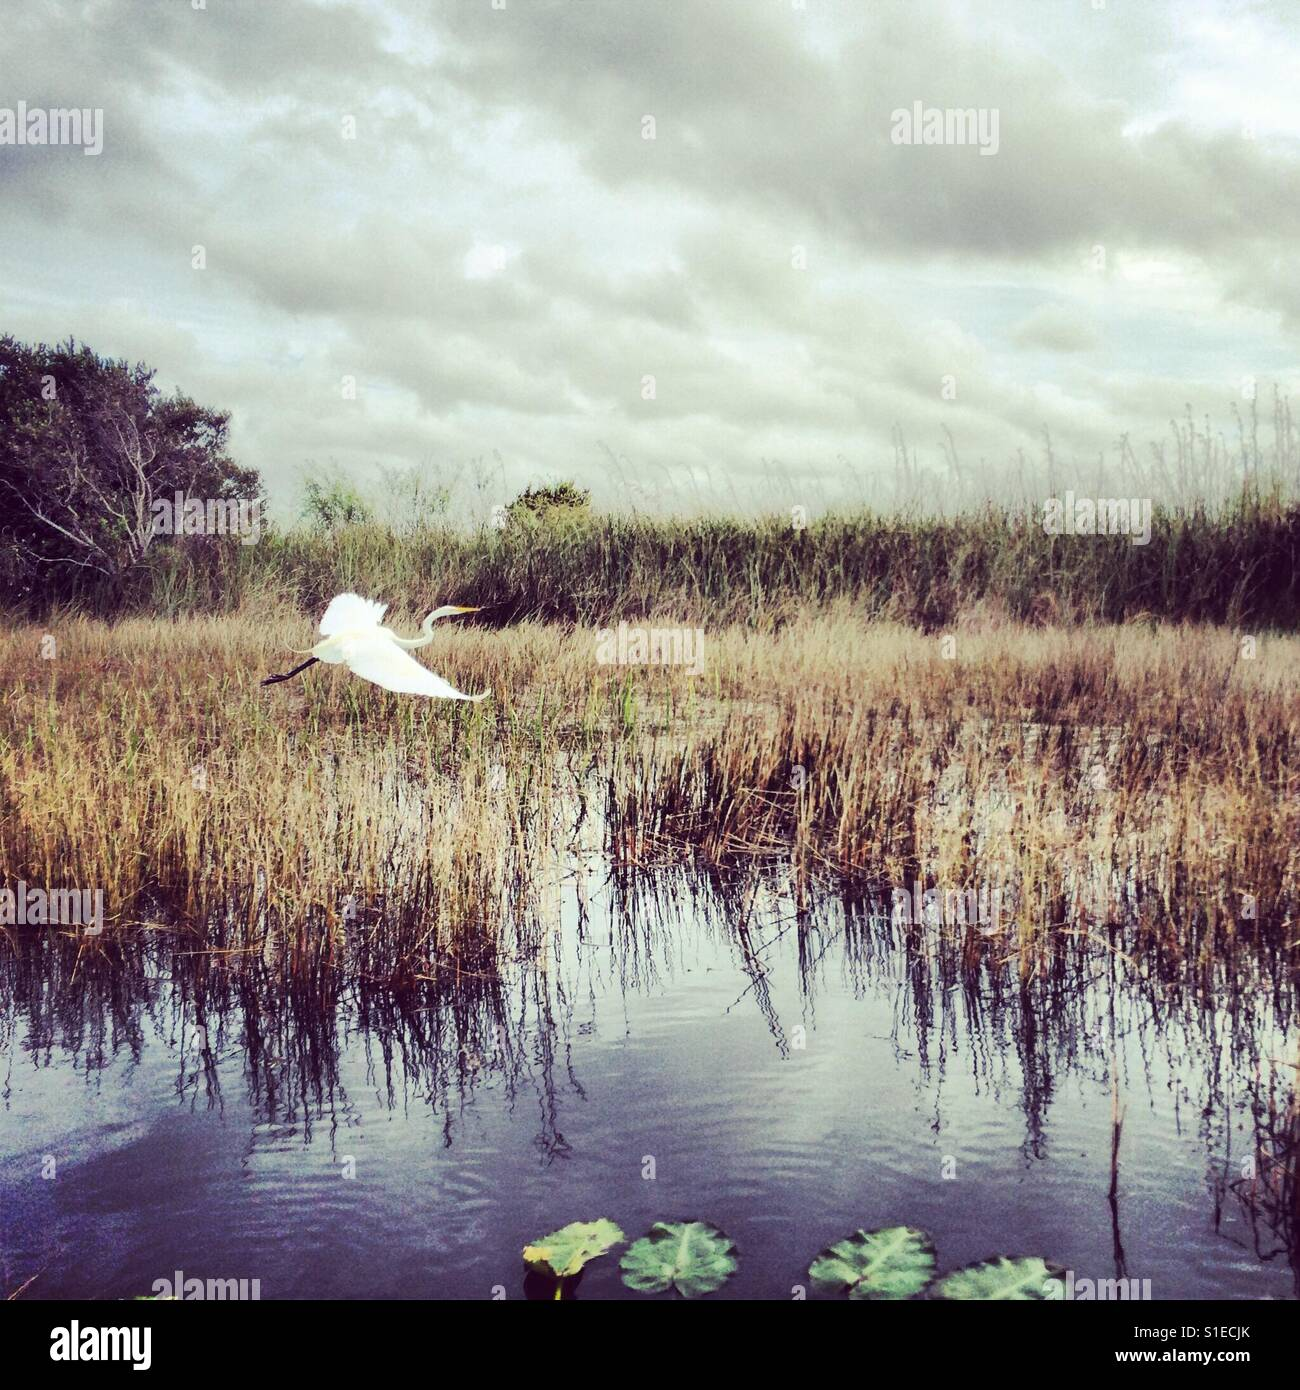 Swamp Life - Stock Image